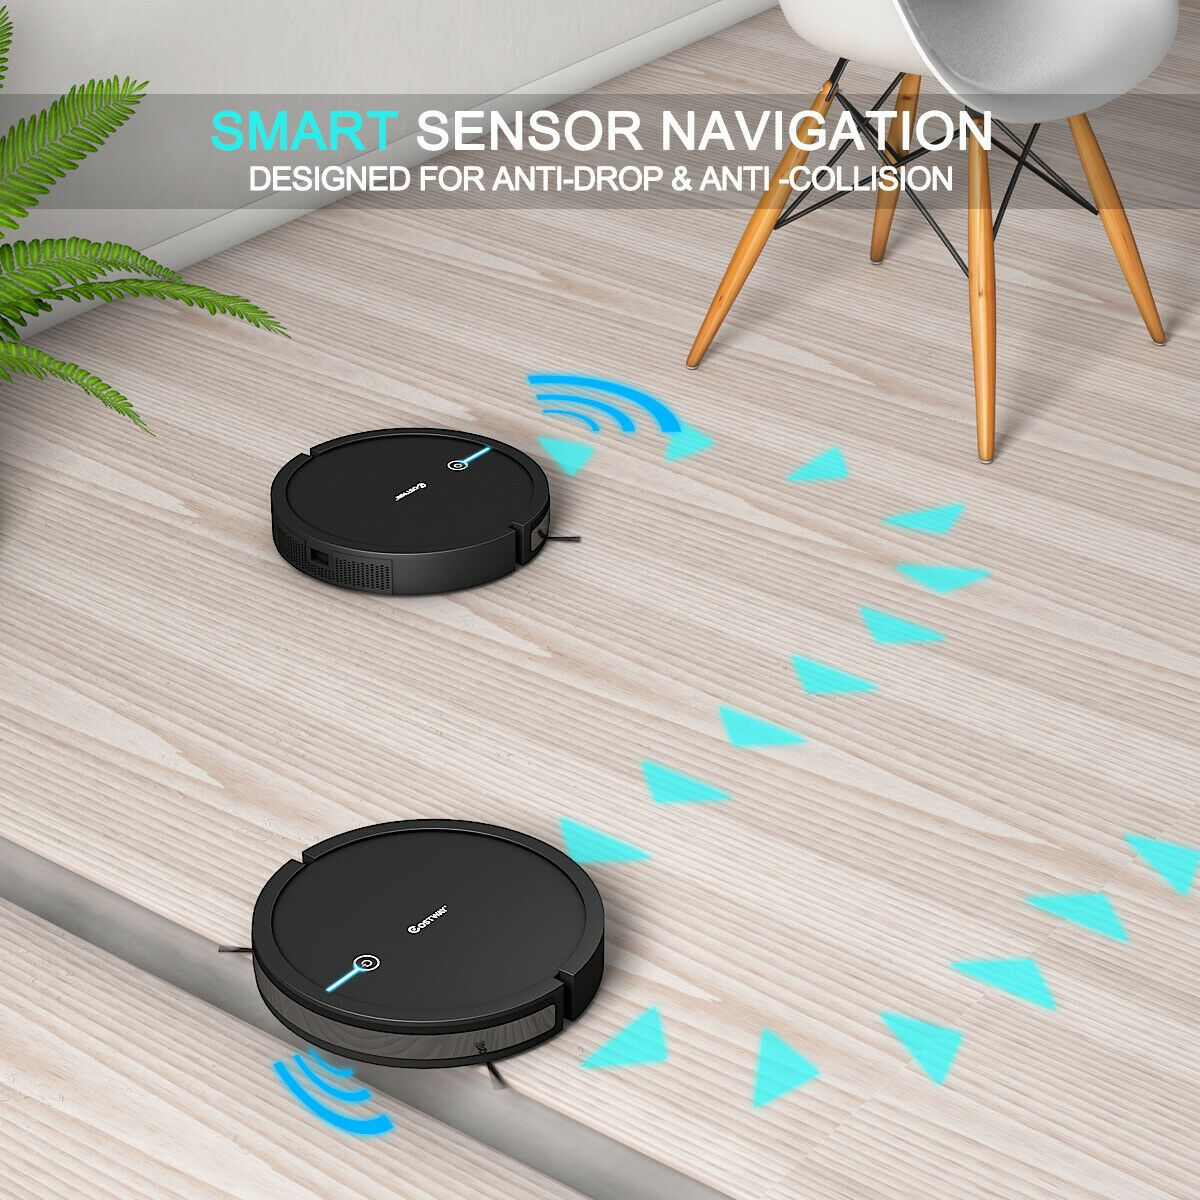 Costway Robot Vacuum Cleaner Self-Charge App Voice Control Filter Water Tank Black